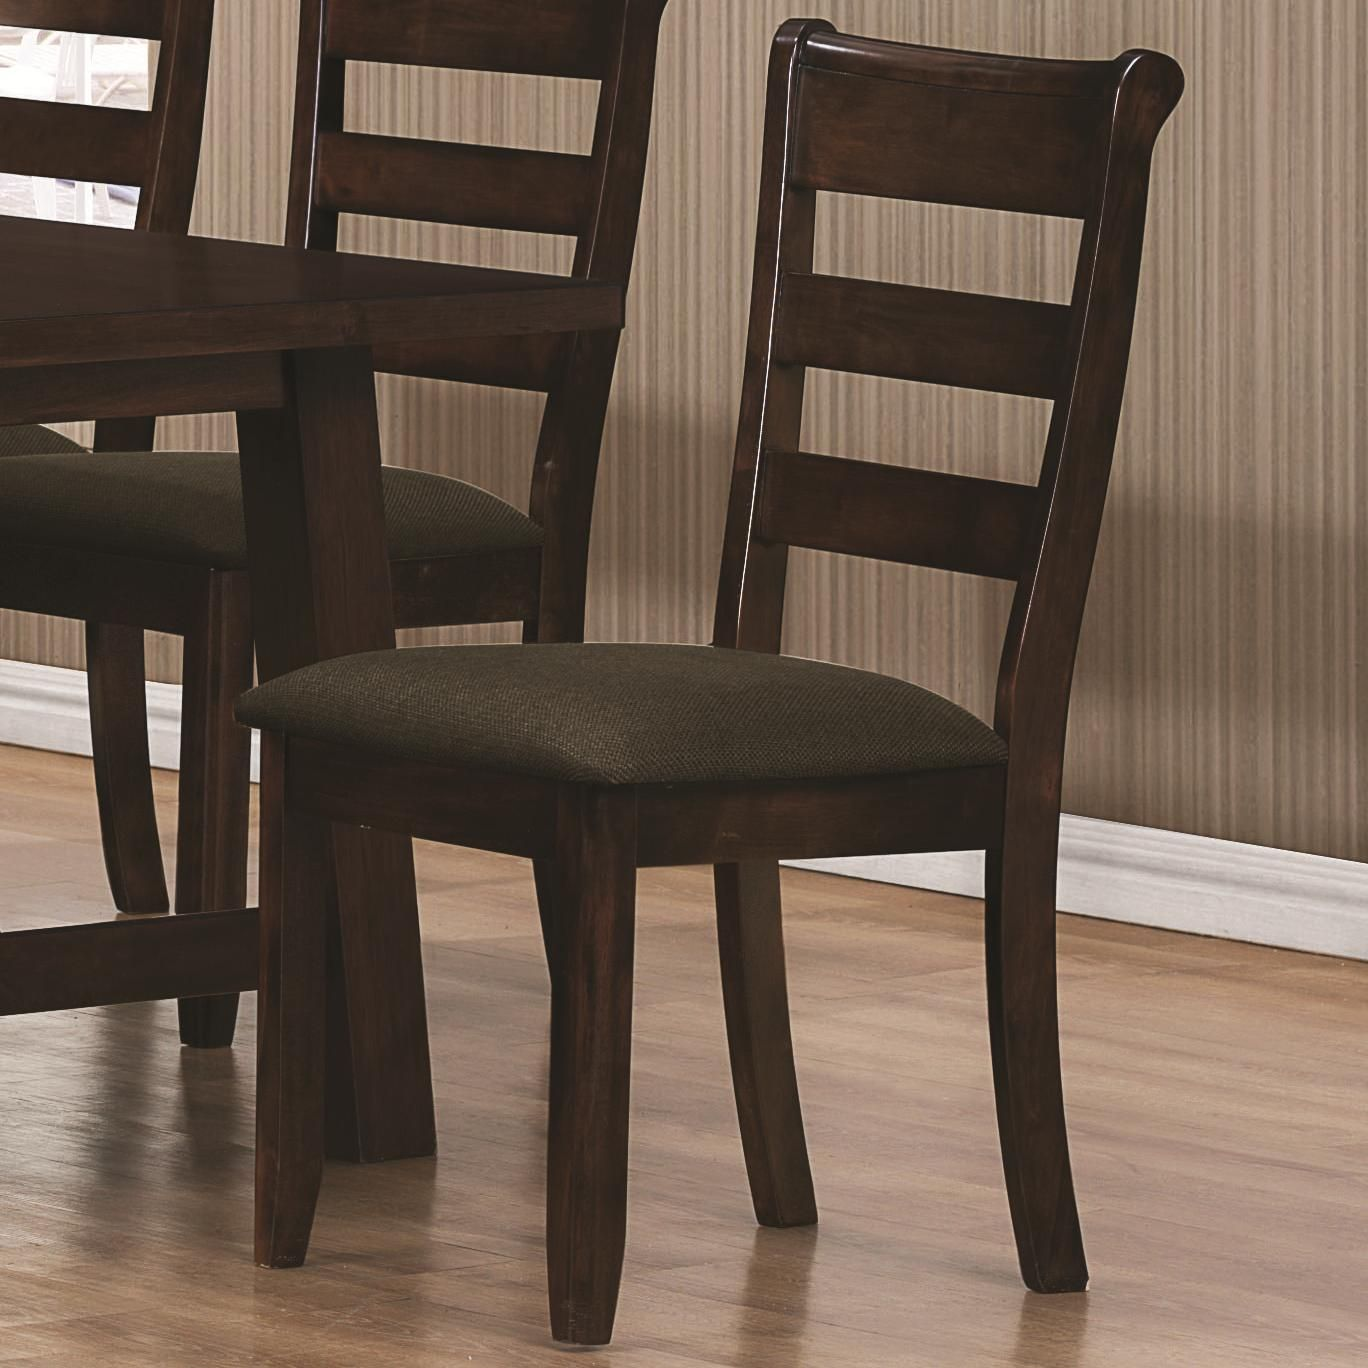 https://sep.yimg.com/ay/yhst-130150896824807/julius-rustic-walnut-wood-dining-chair-4.jpg